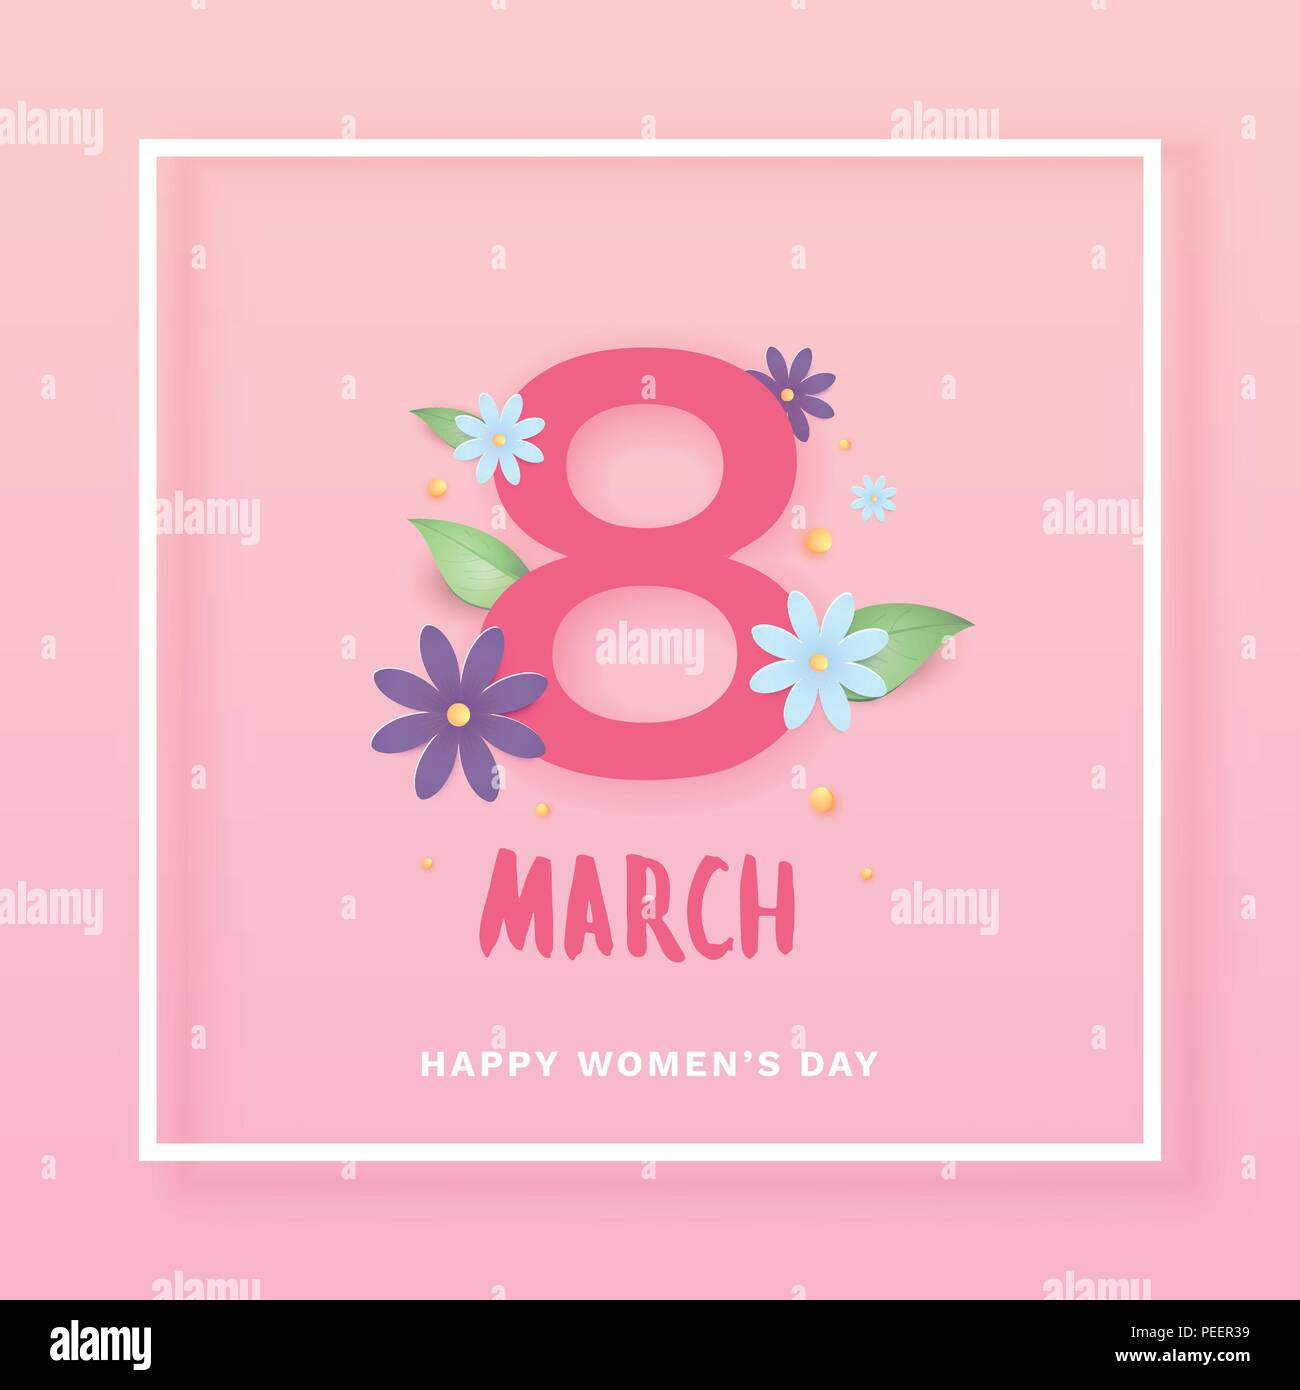 8 March. Happy Women's Day Square Cover. Template For